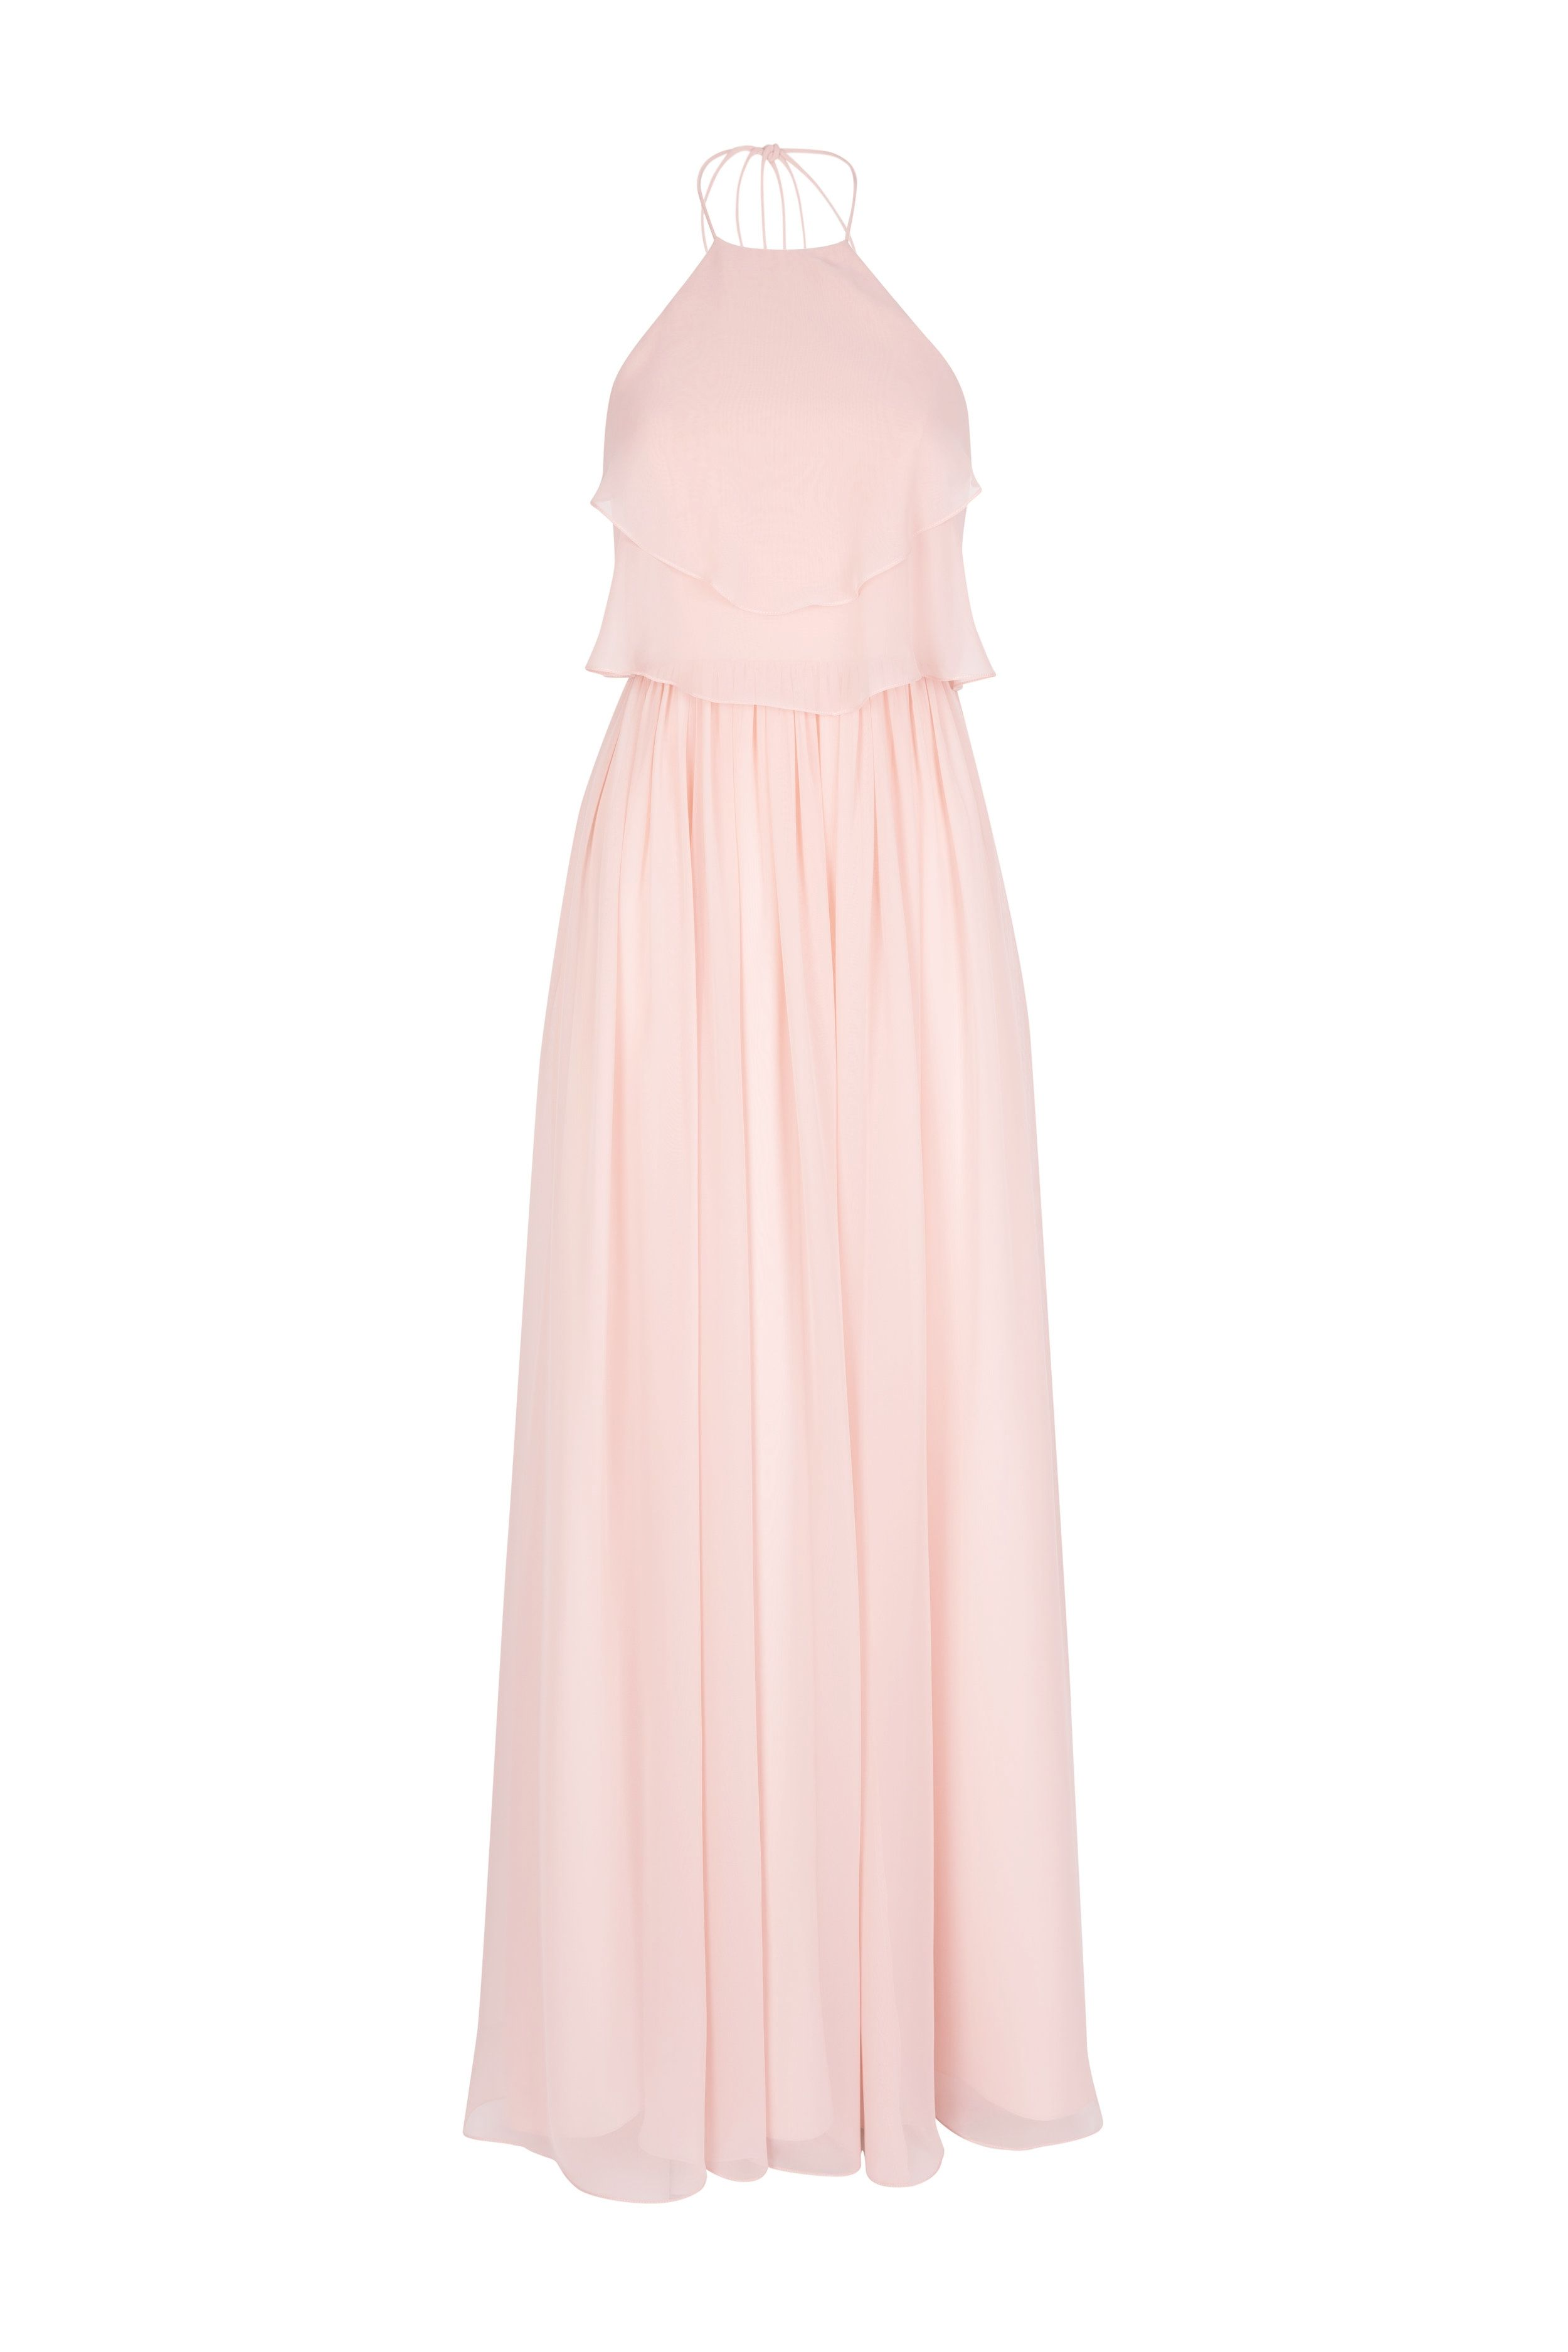 Luxury dresses for wedding guest  Olympia in Blush  Evans Wedding  Pinterest  Gowns Dresses and Bodice